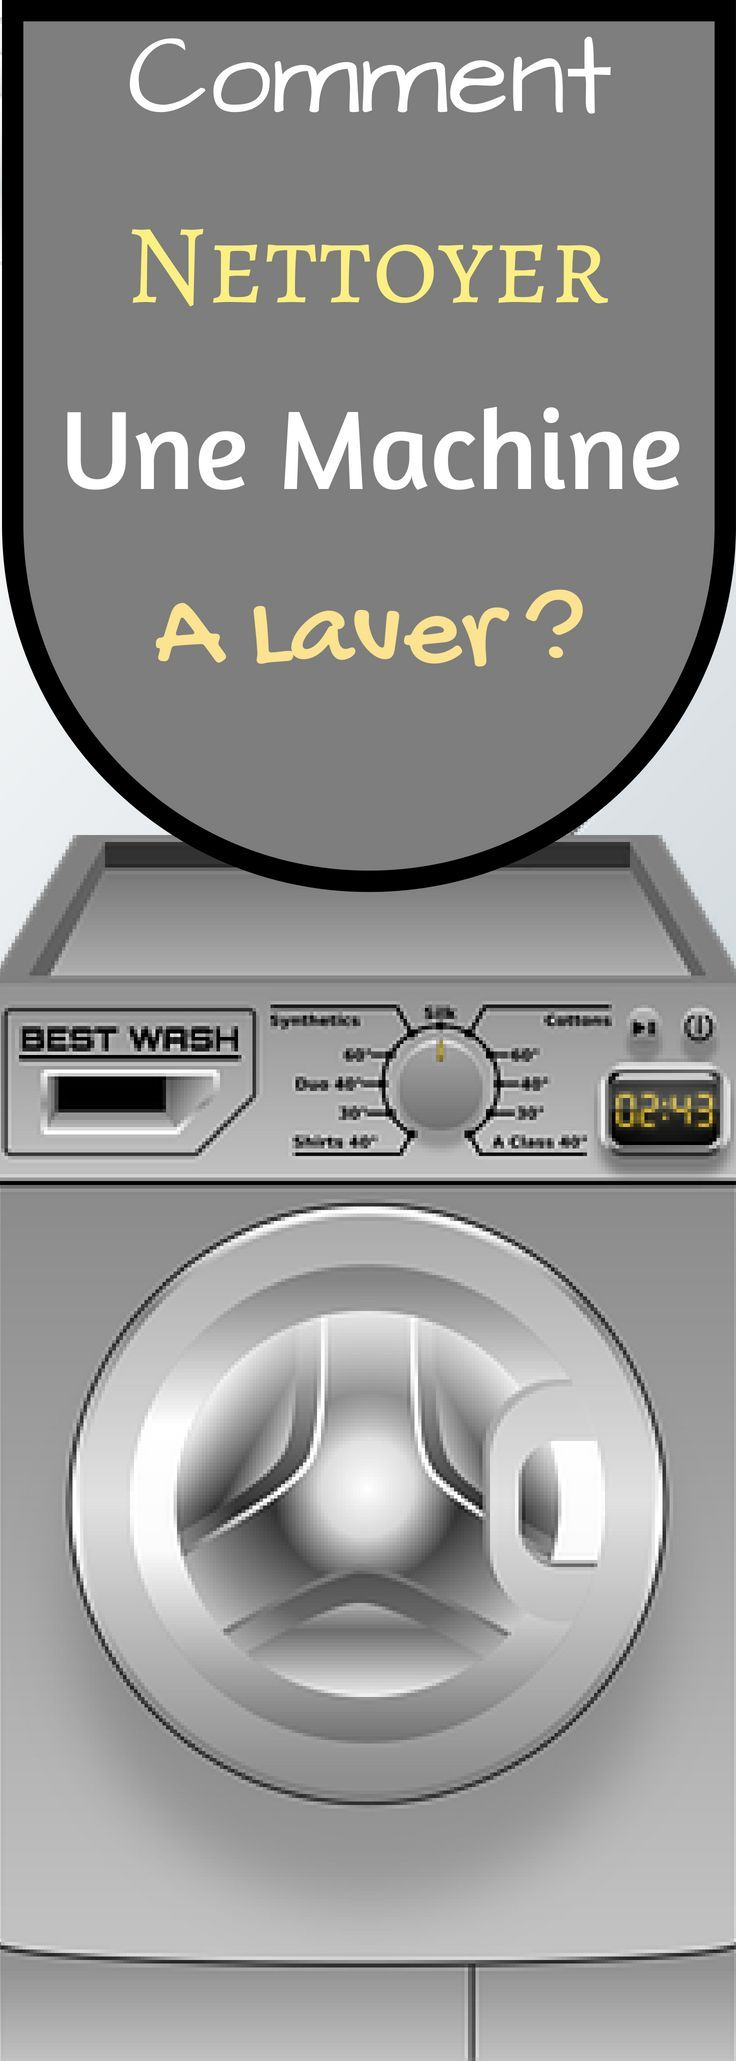 comment nettoyer une machine laver washing machine clean your washing machine cleaning